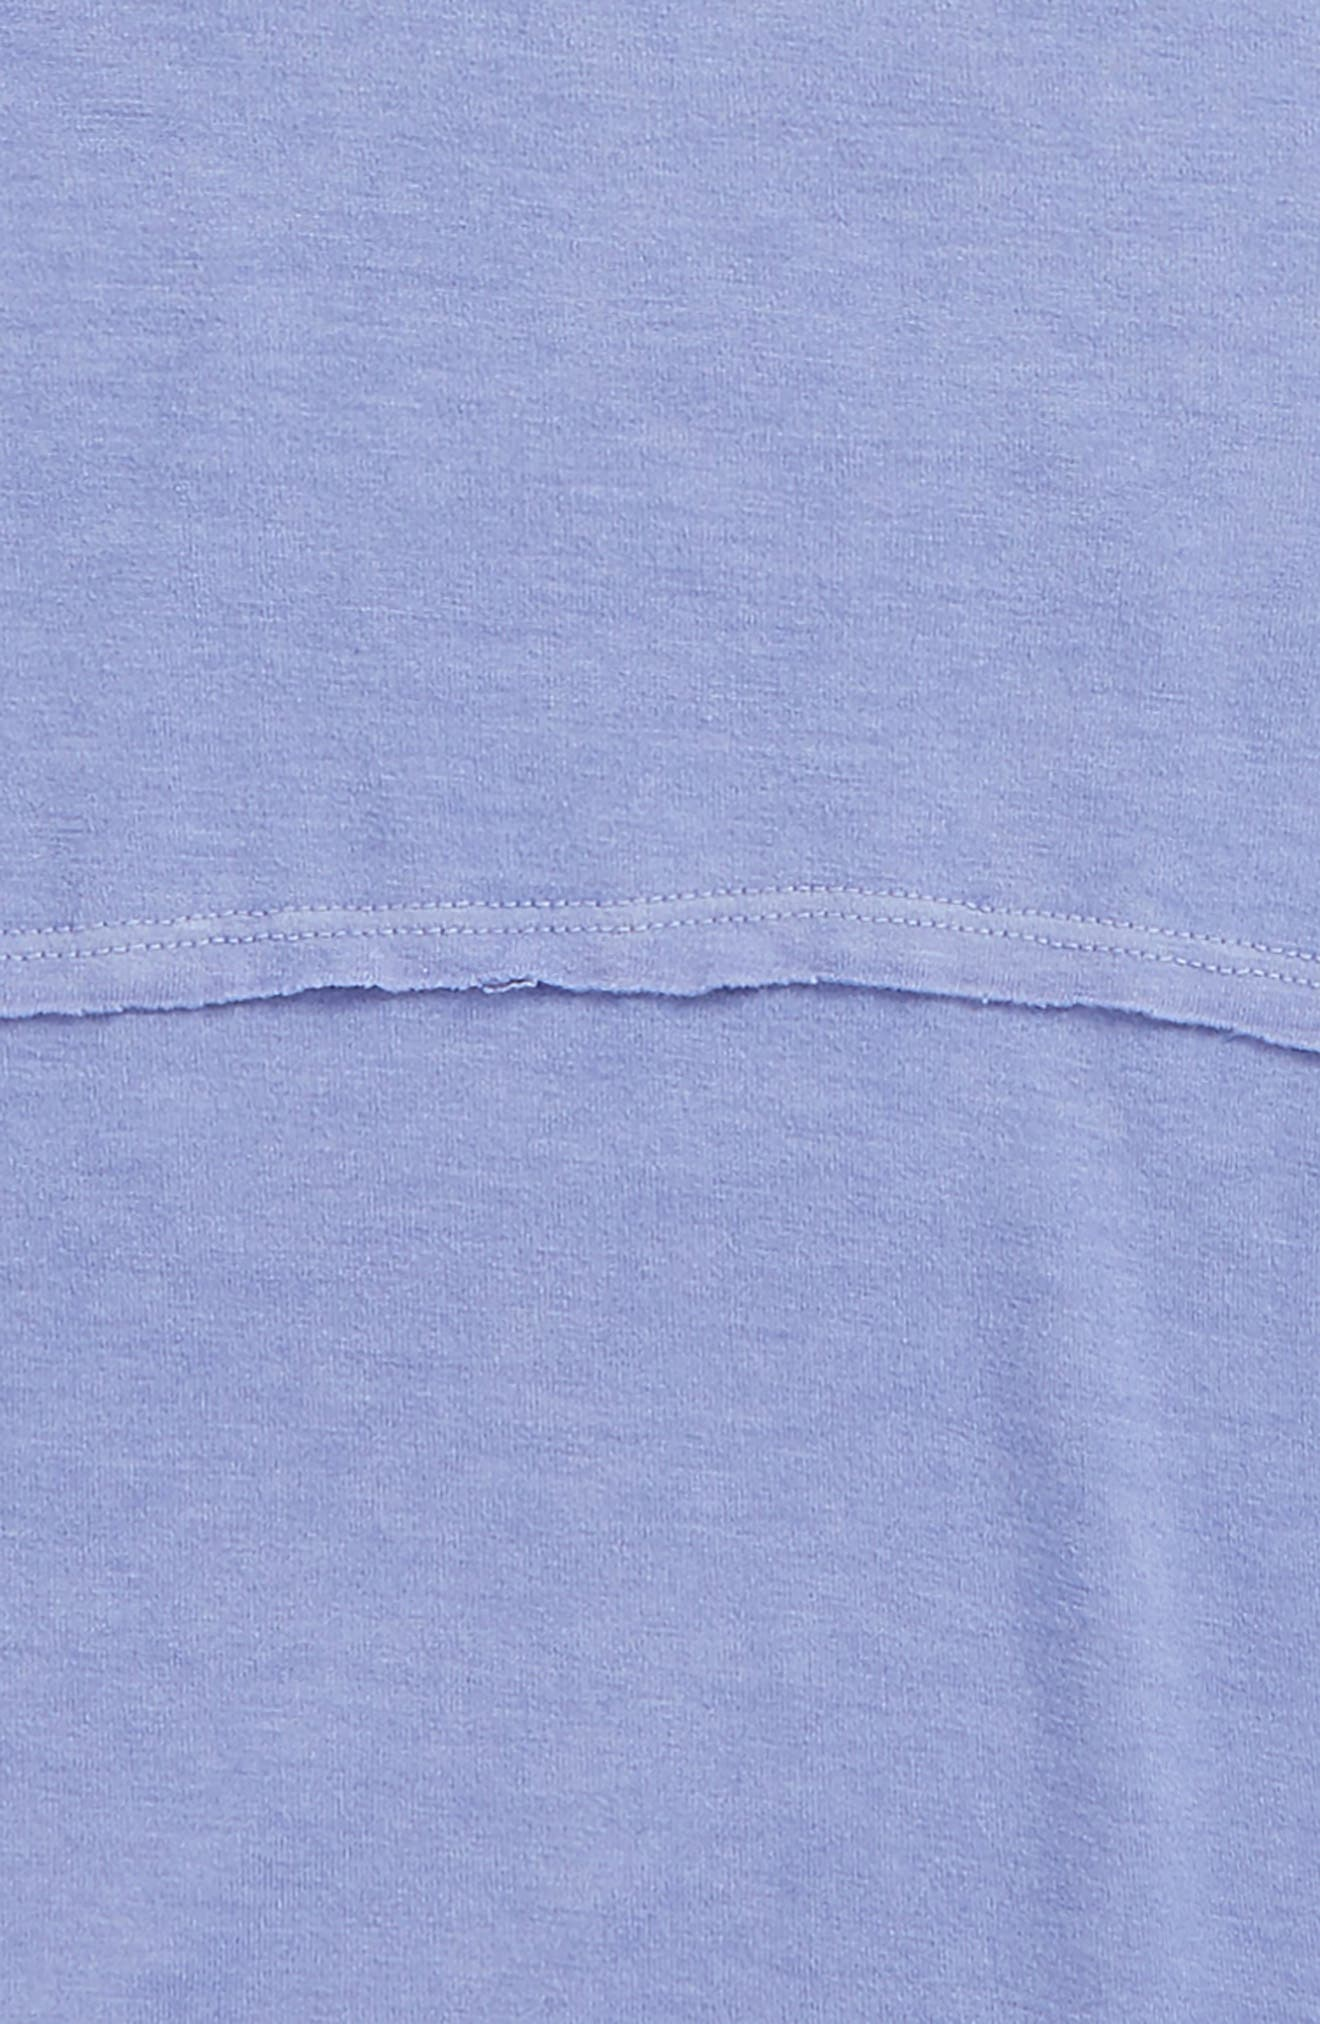 High/Low Tee,                             Alternate thumbnail 5, color,